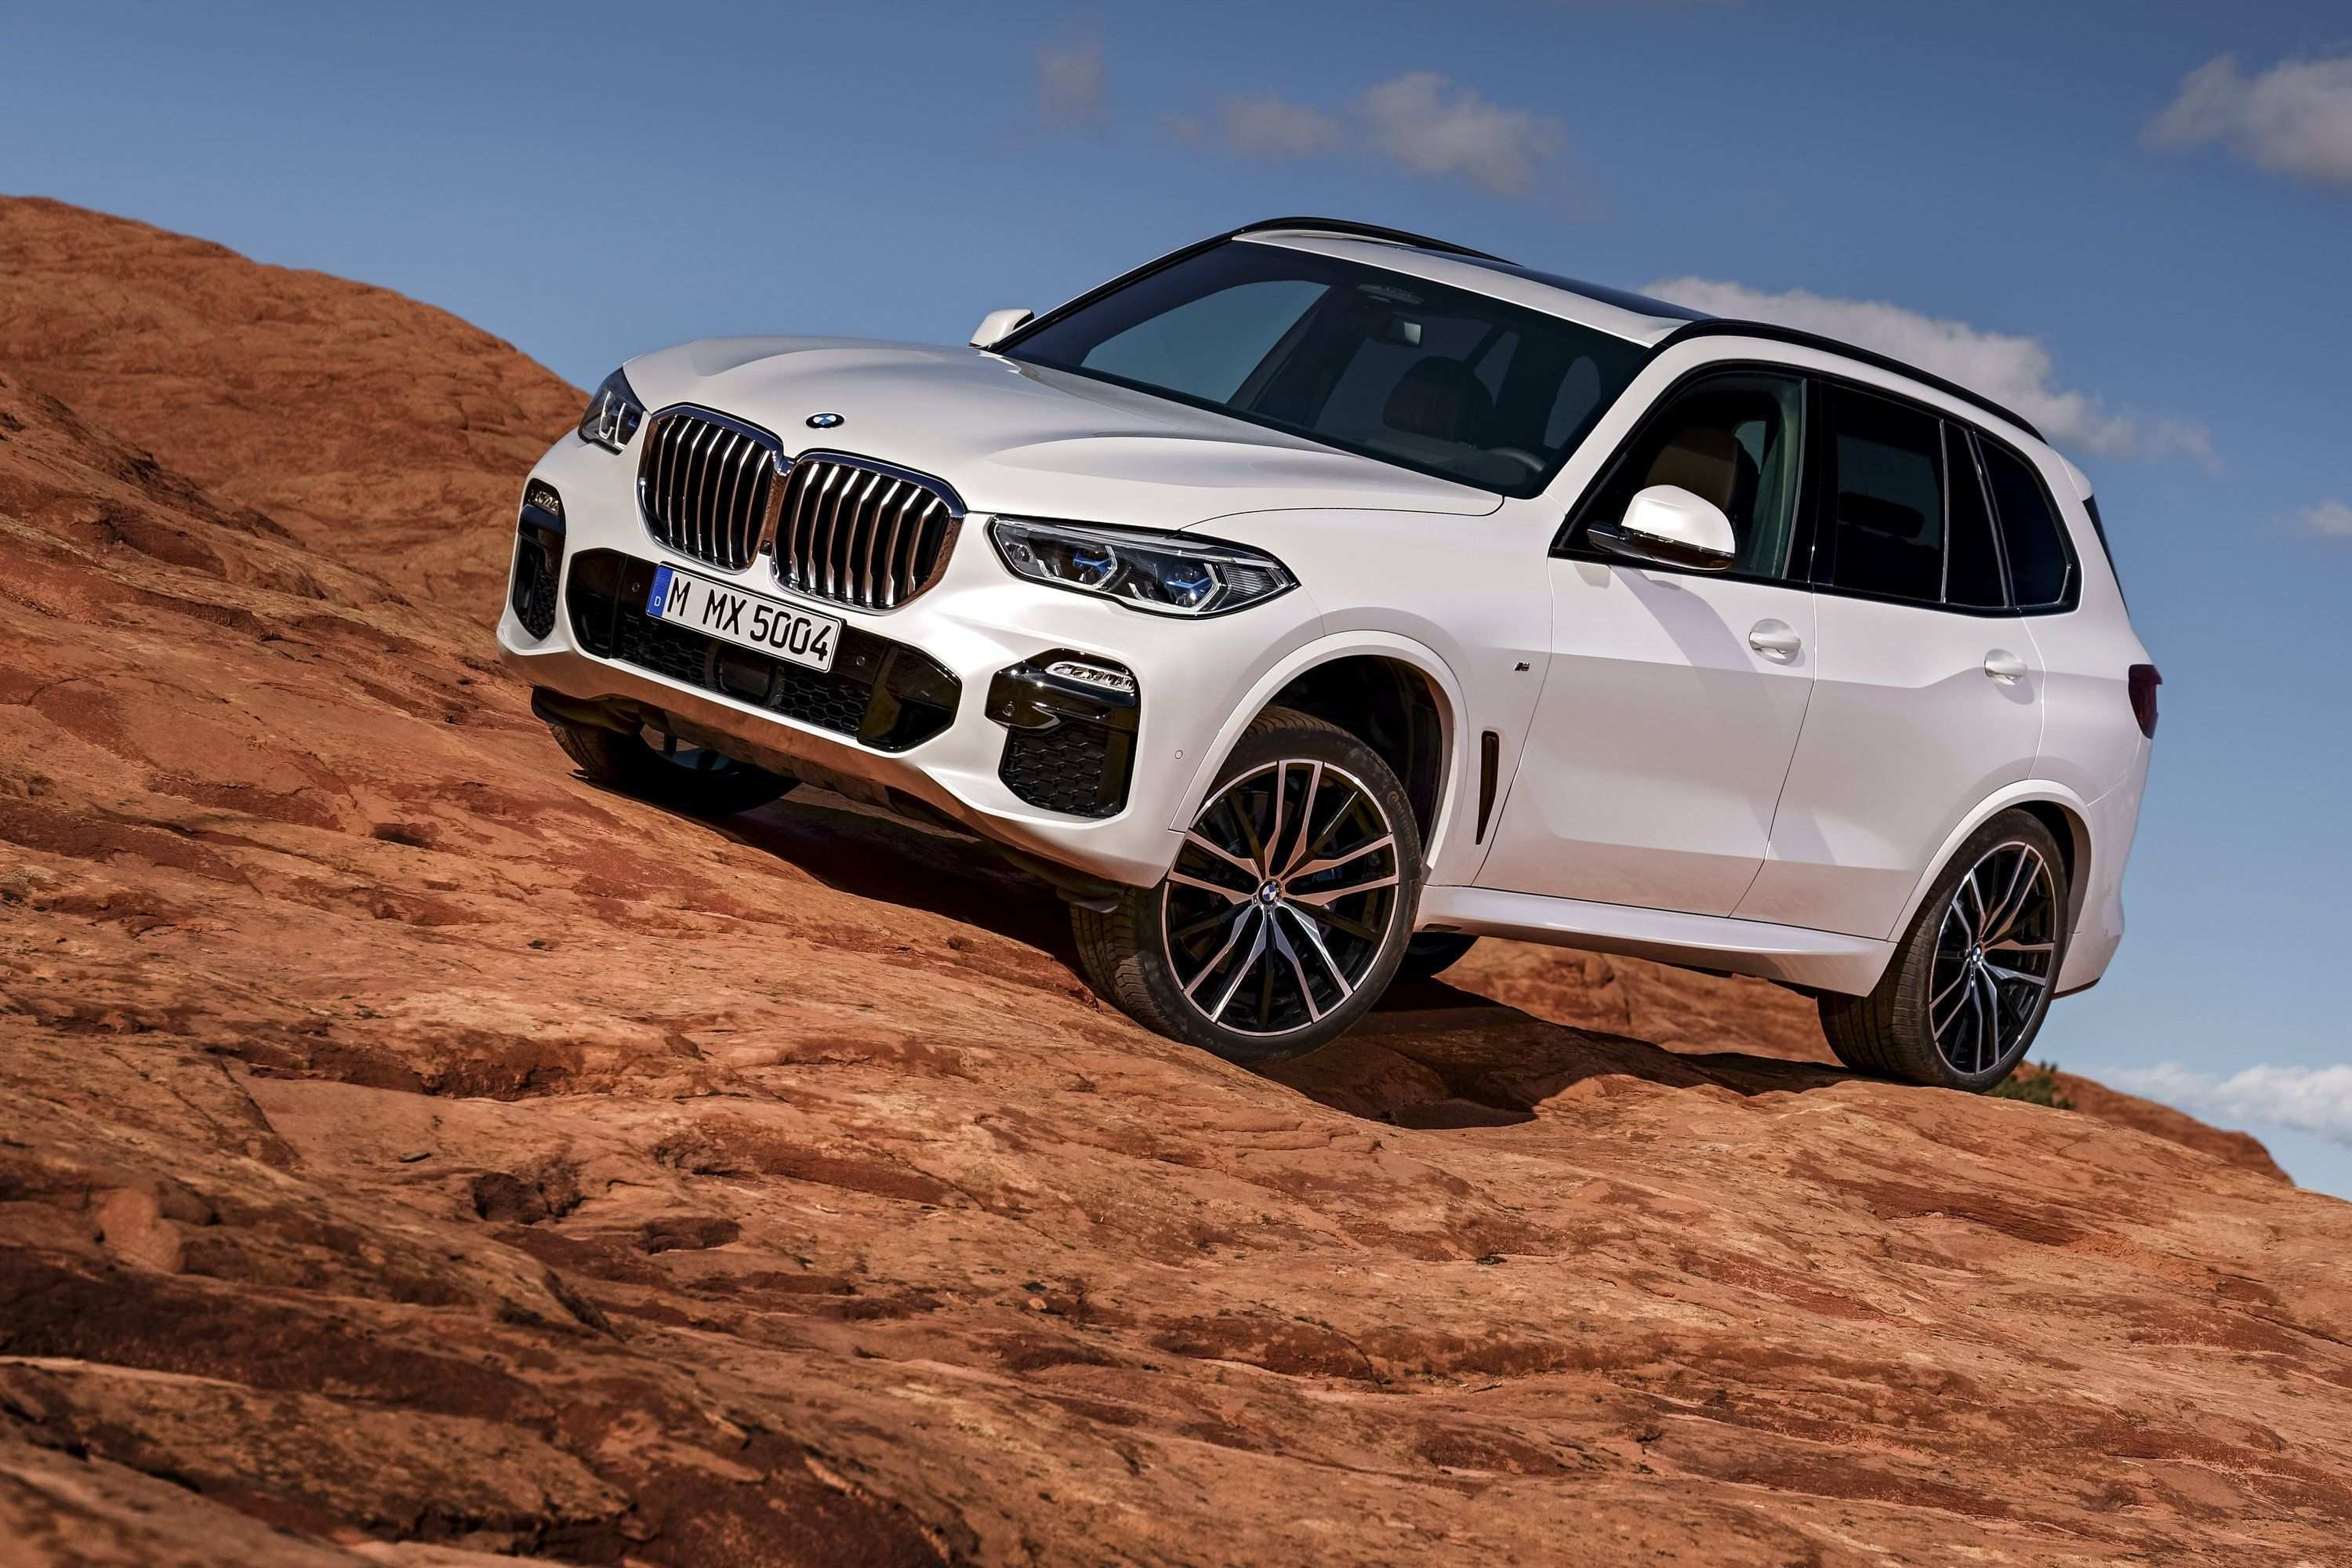 11 Best 2018 Vs 2019 Bmw Terrain Price